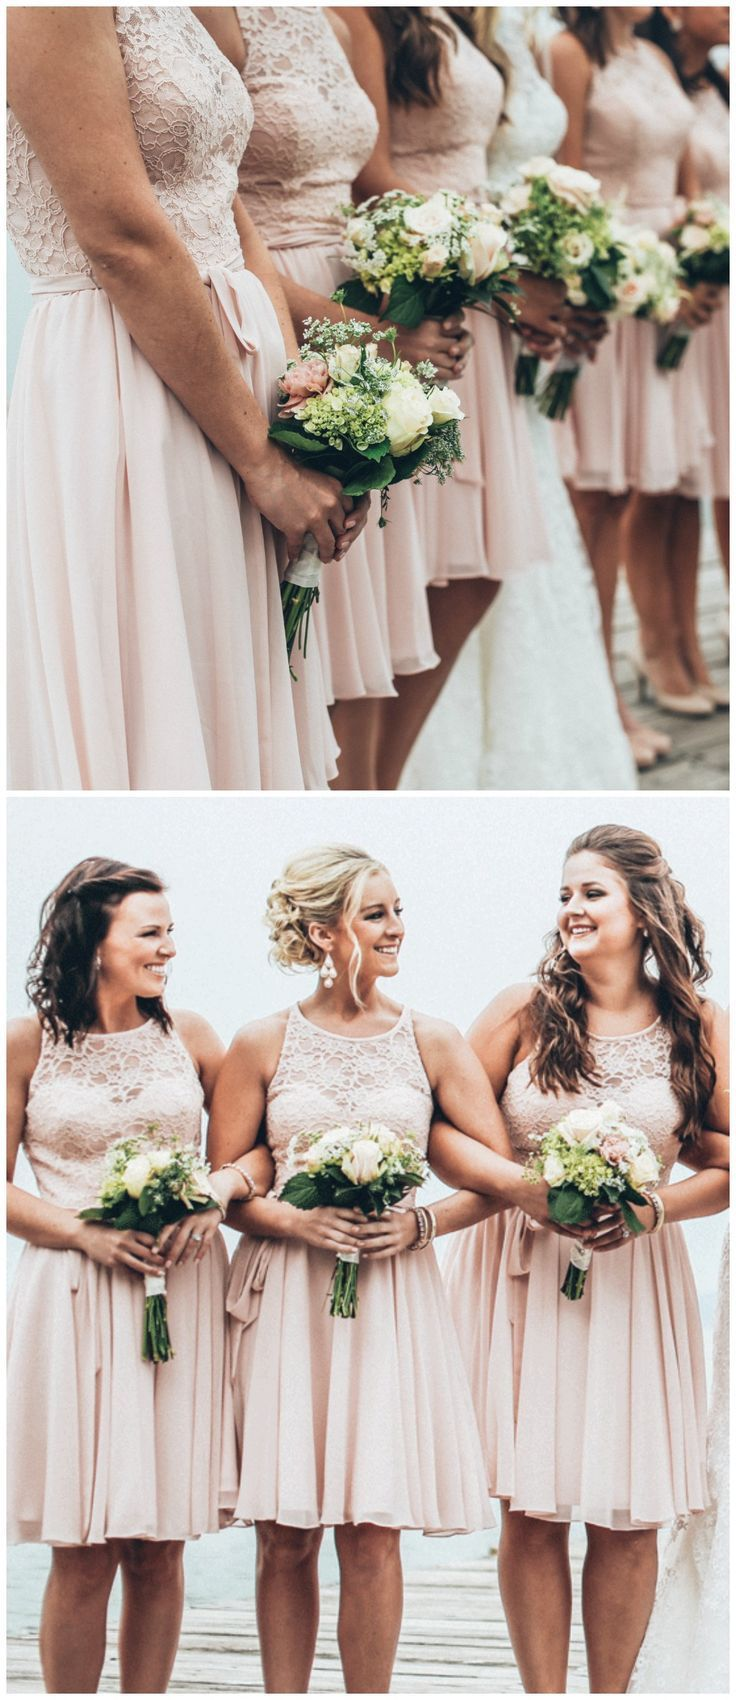 Country style wedding dress  Thereus nothing more romantic than a lace and chiffon bridesmaid